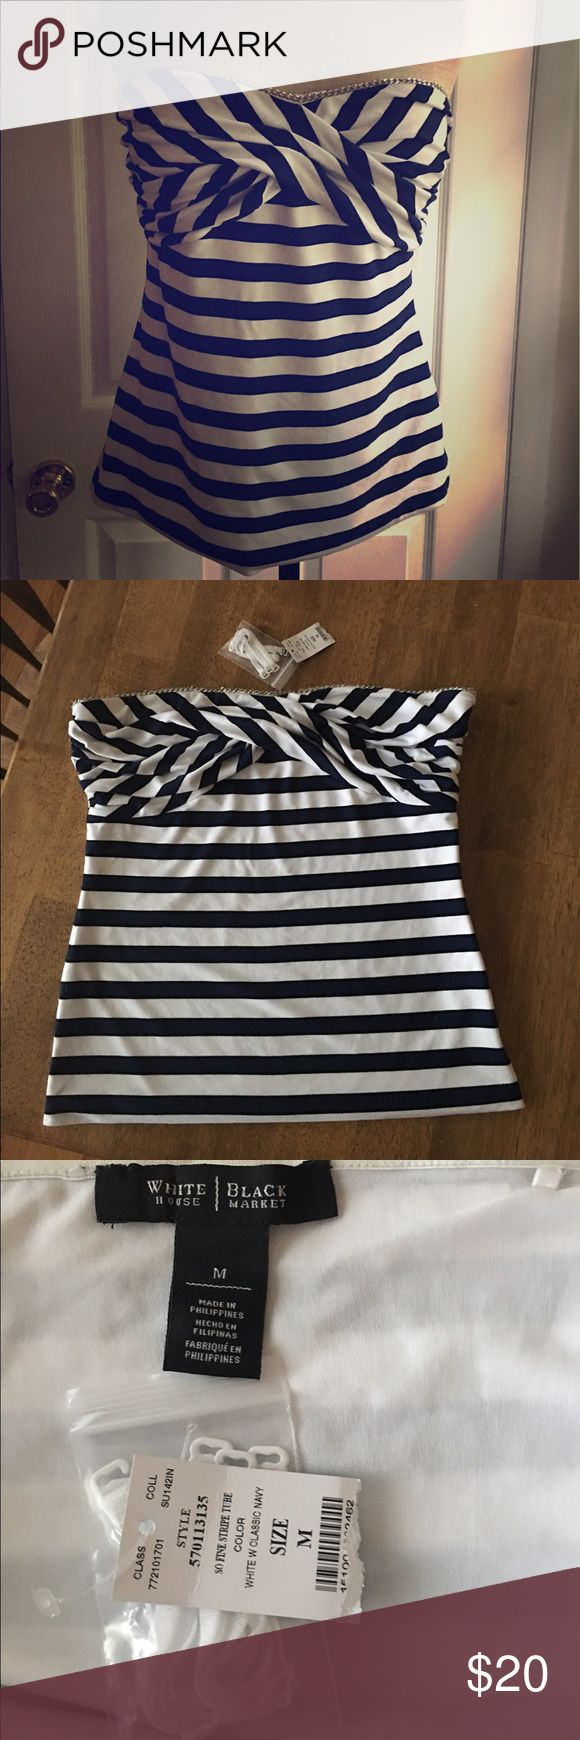 """White House black market navy & white tube top. White House black market navy and white striped tube top. Chain along top of bust, flattering cross cross bust, fully lined with strip along top to help keep in place. Size zip with hook closure, with straps, never worn, excellent condition. Size M 17"""" across bust, plenty of room due to style, 15"""" across waist, 17"""" across hem and  17"""" length. White House Black Market Tops"""